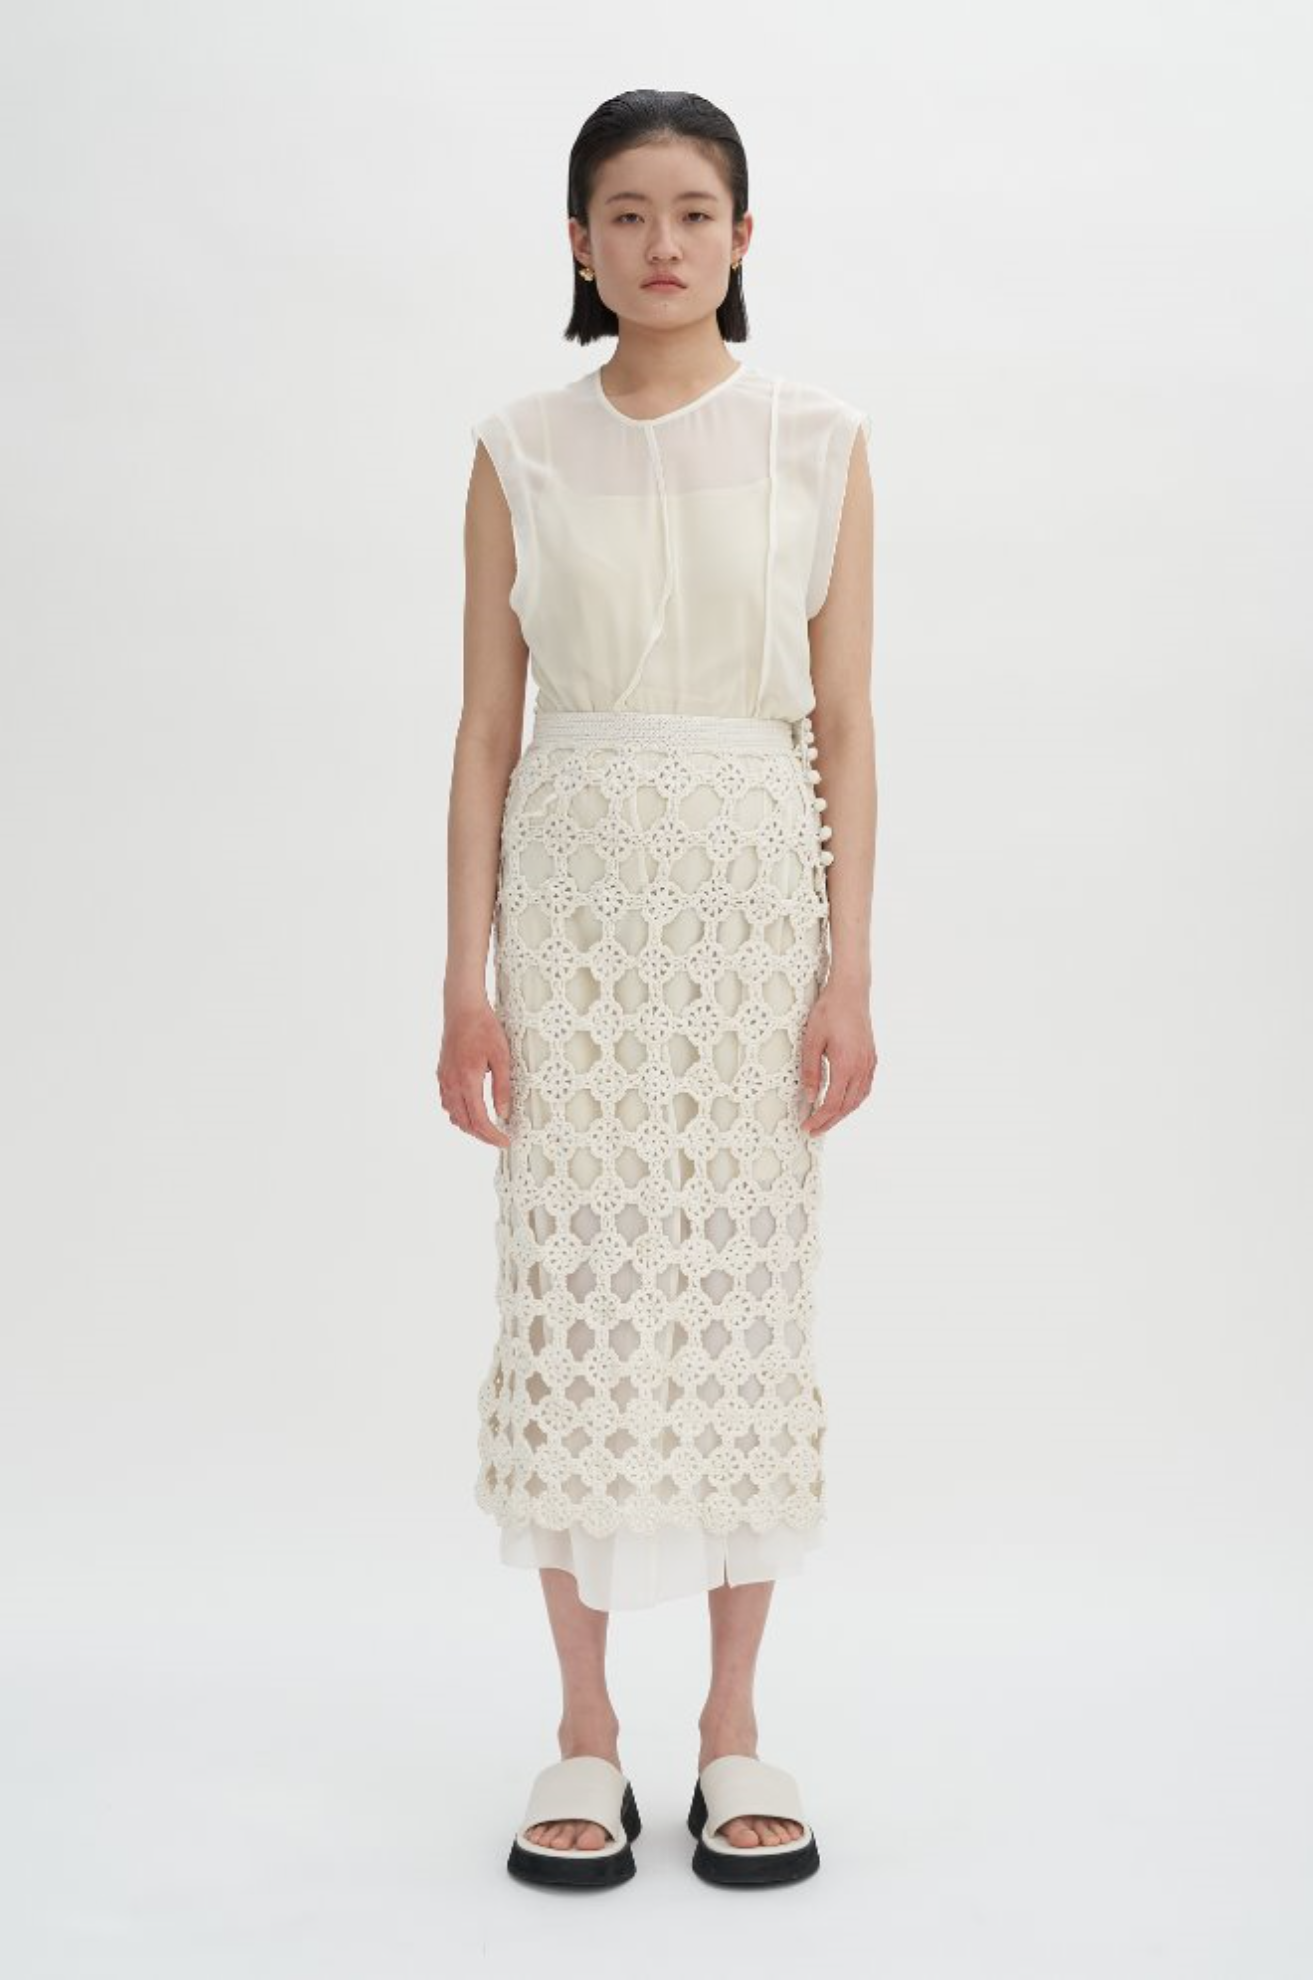 Paneled Dress with Inner Slip (5/14일 순차발송)